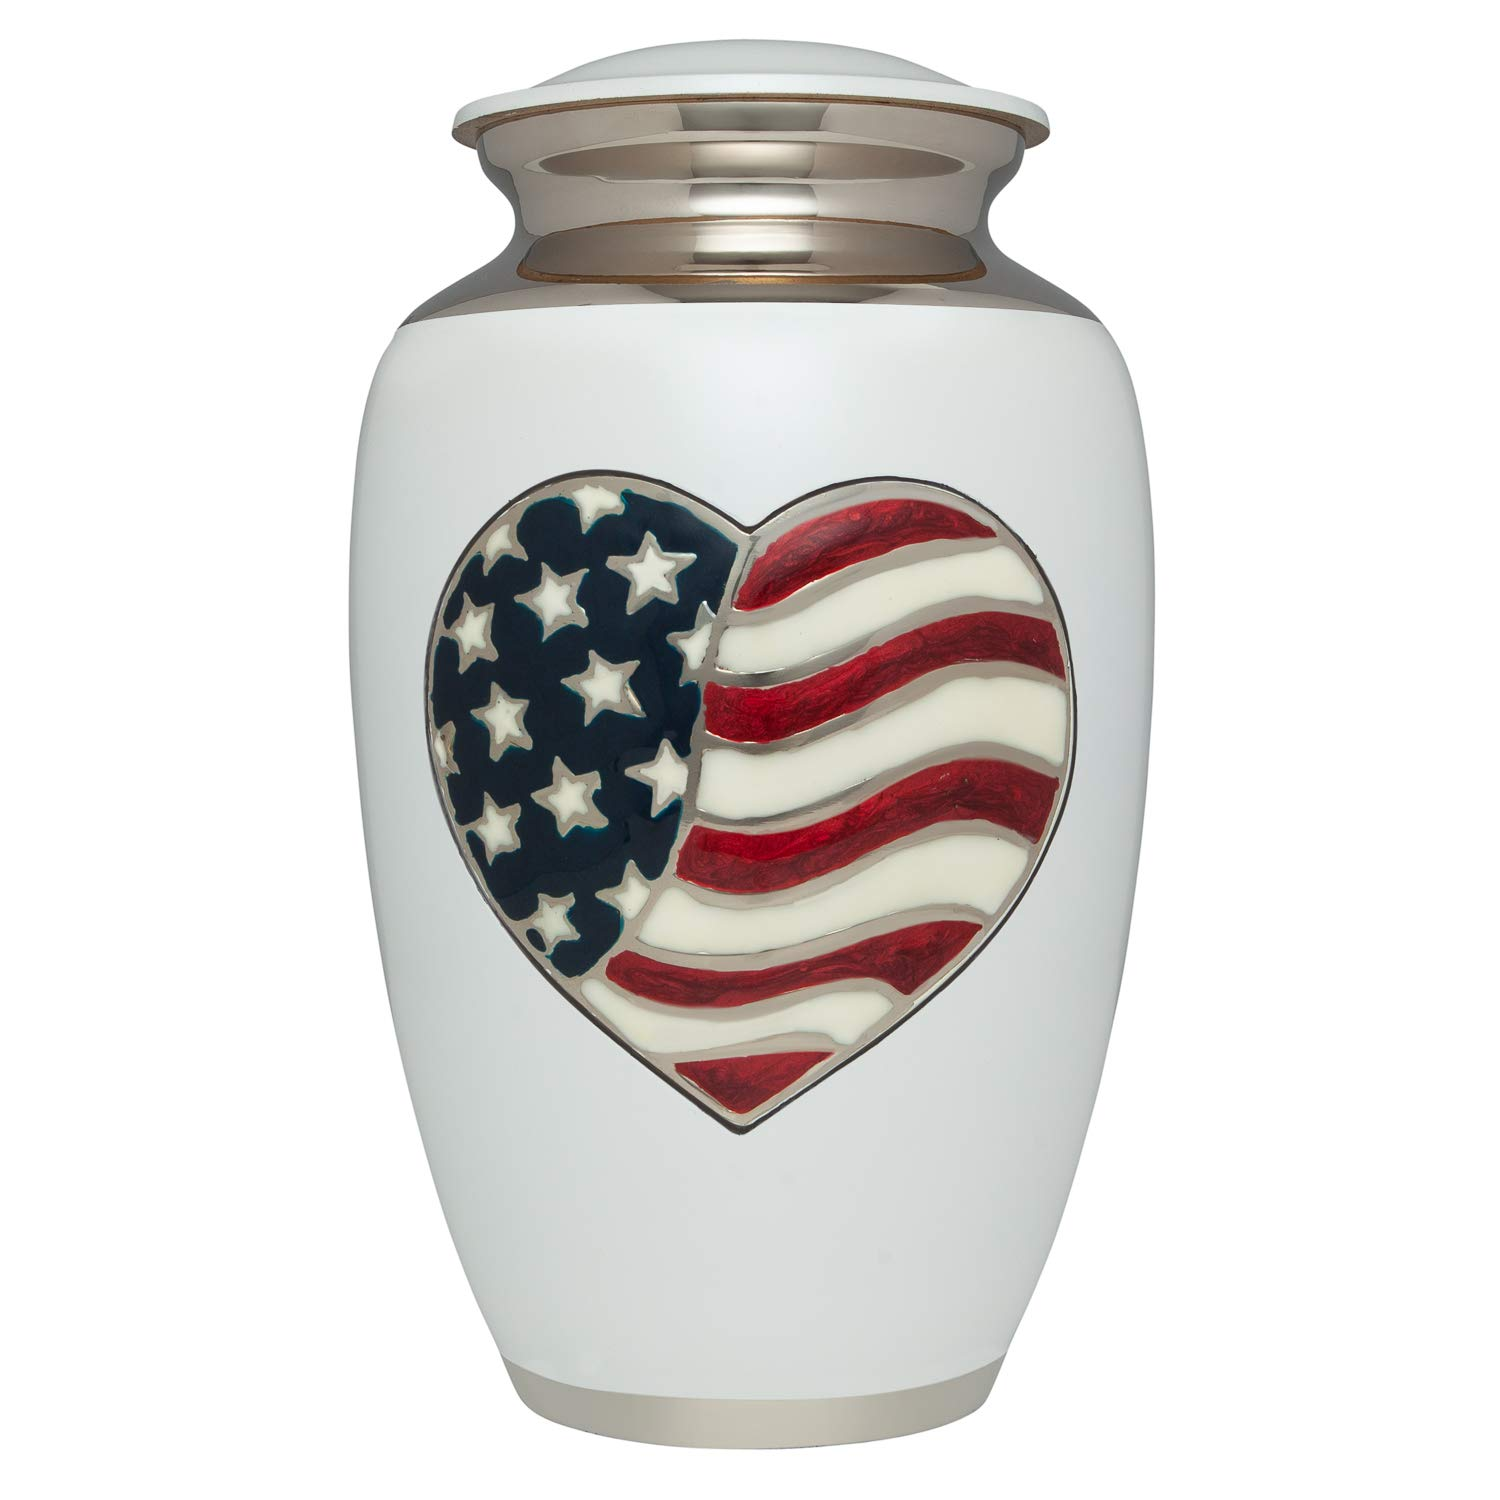 Eternal Flame Red Funeral Urn with Silver Rose Ansons Cremation Urn Memorial or Cemetery Burial Urn for Human Ashes Large Size fits The Remains of an Adult up to 220 lbs Ansons Urns Aluminum